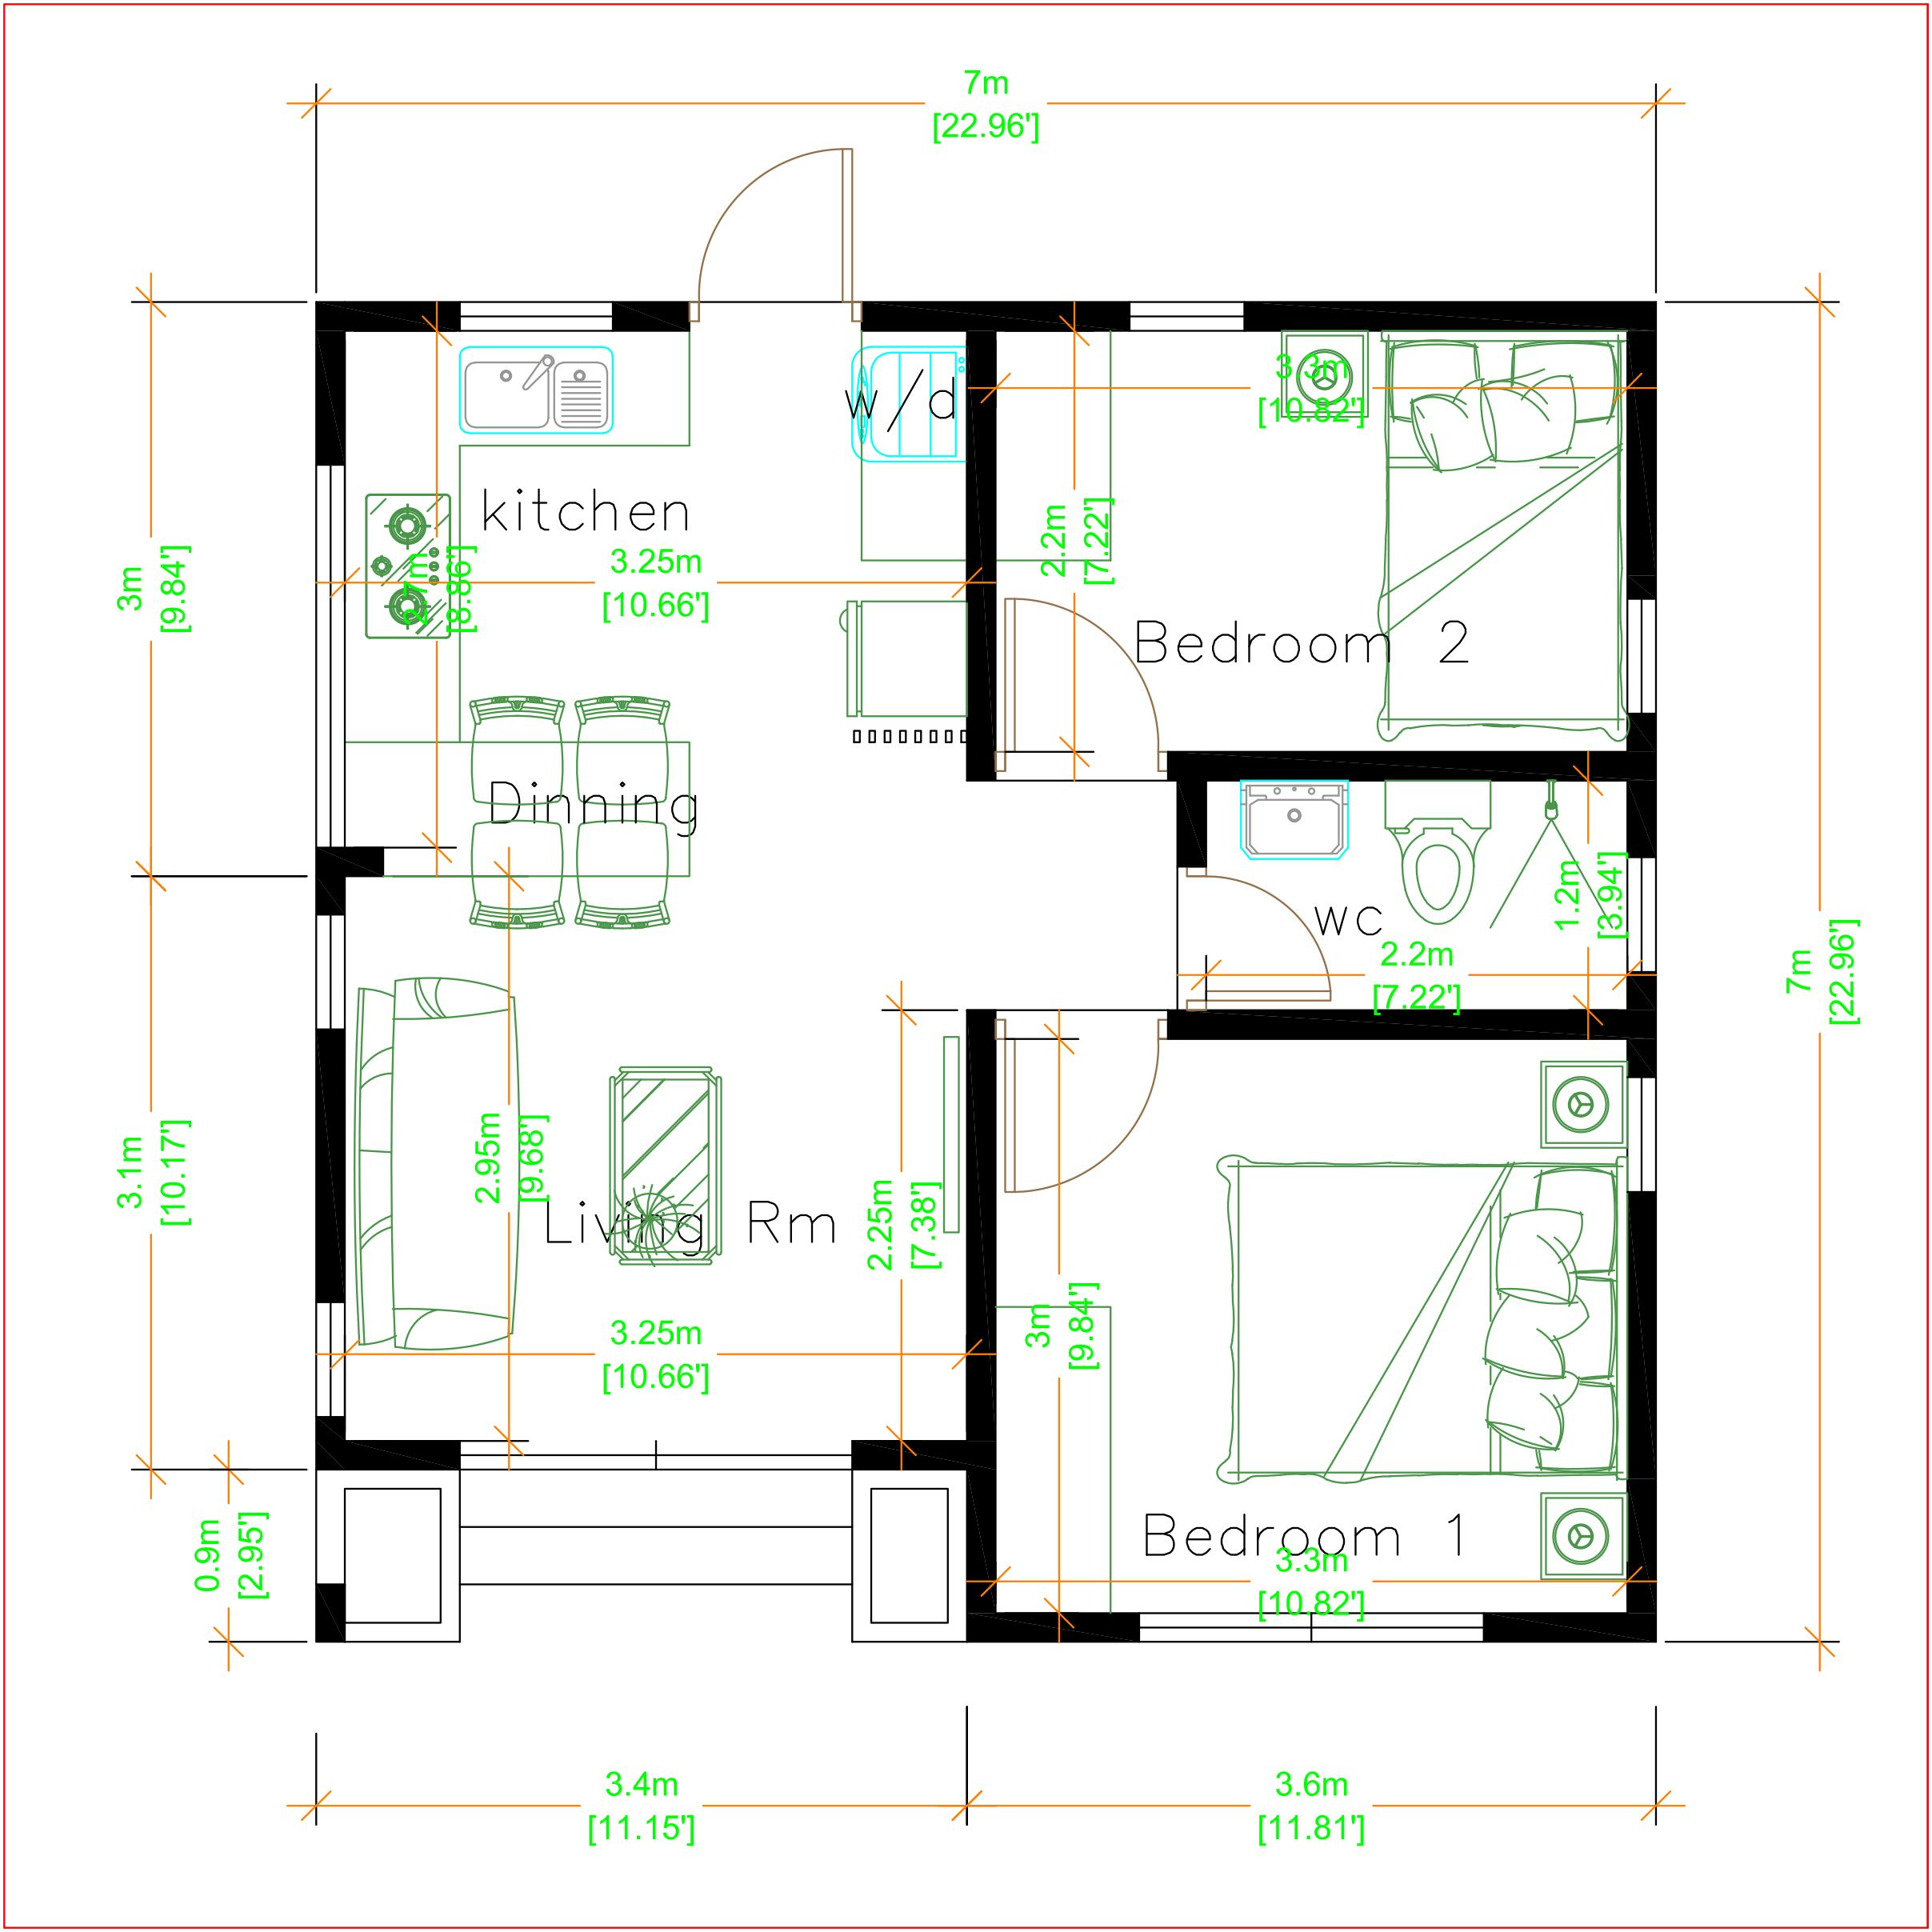 Small House Design 7x7 Meters 24x24 Feet House Plans S Modern Tiny House Small House Design Small House Design Plans